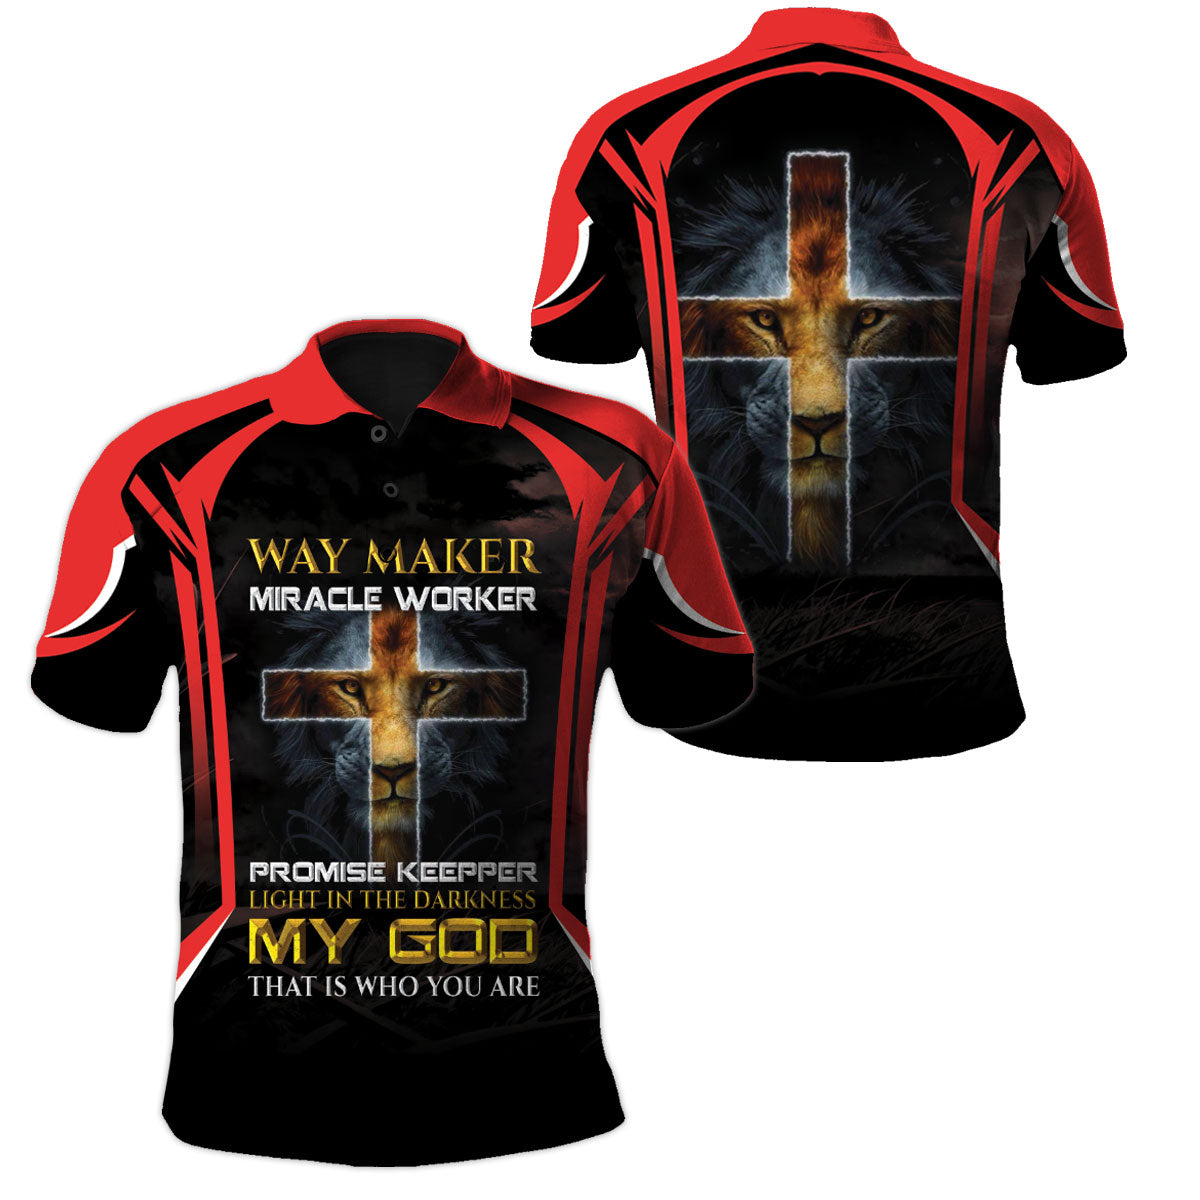 Christian Apparel 3D Printed - Light In The Darkness - GnWarriors Clothing